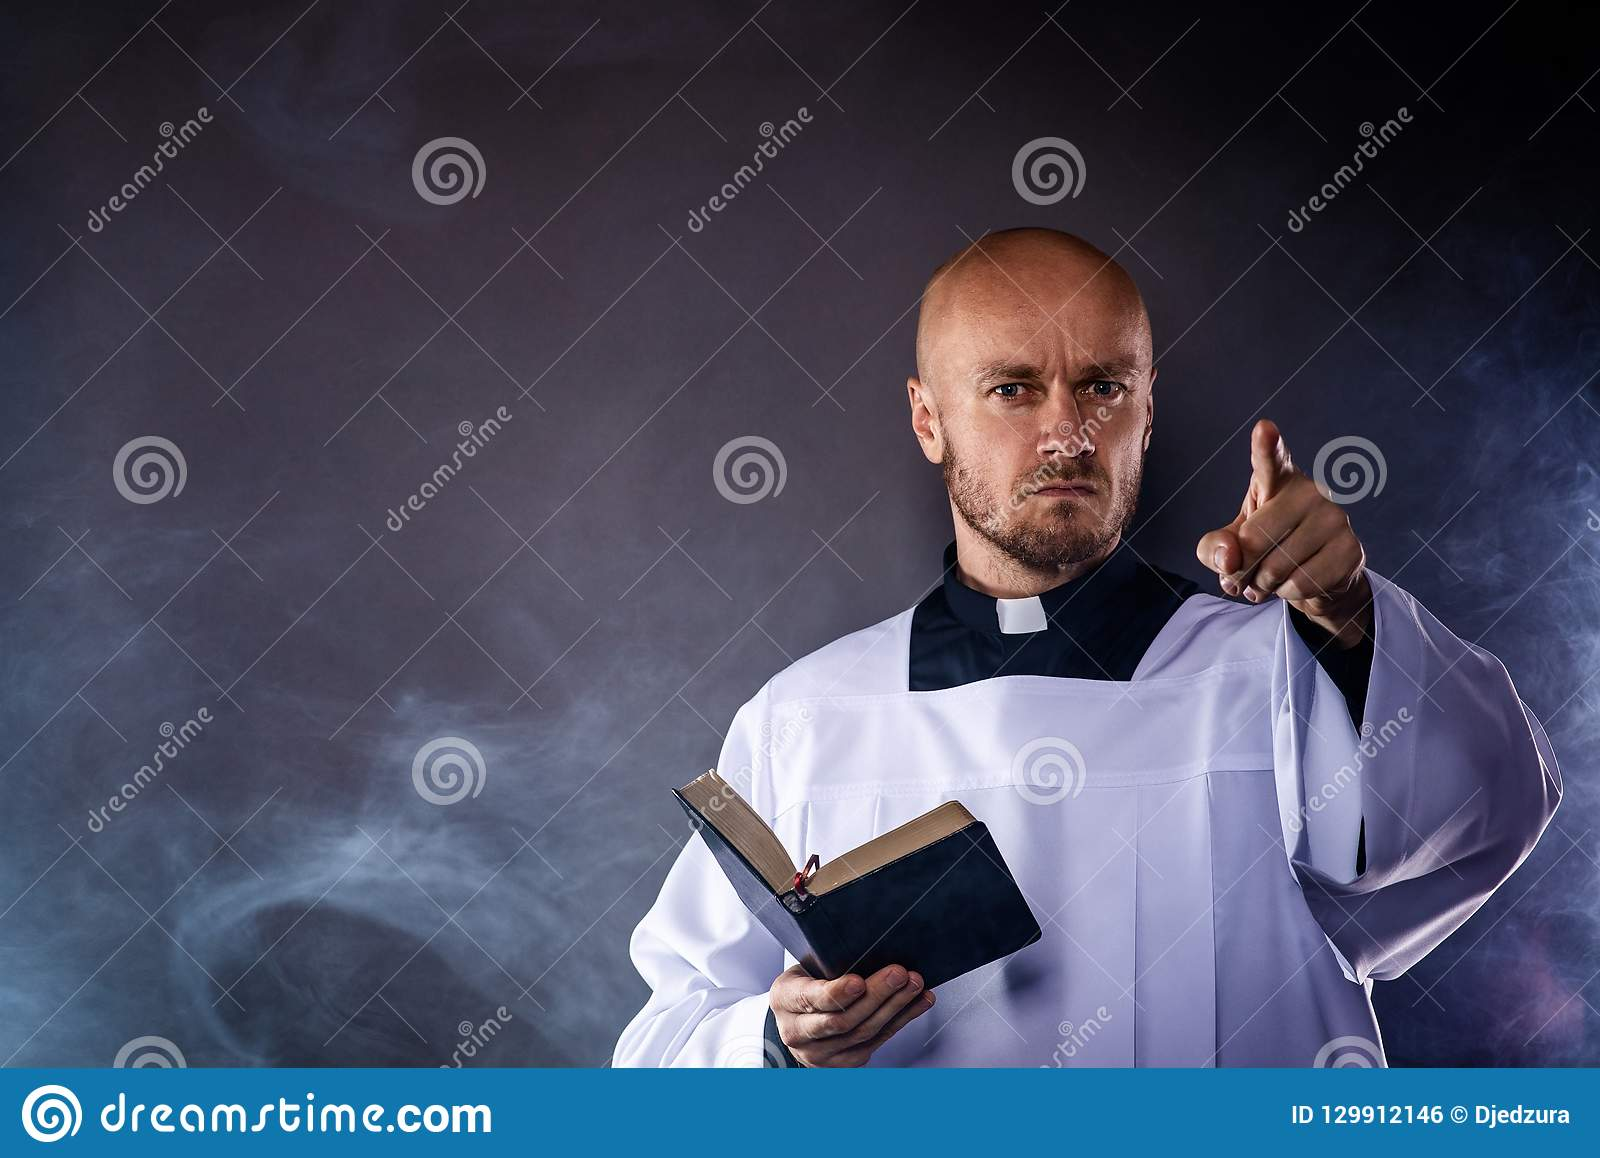 Catholic Priest In White Surplice And Black Shirt With Cleric Collar